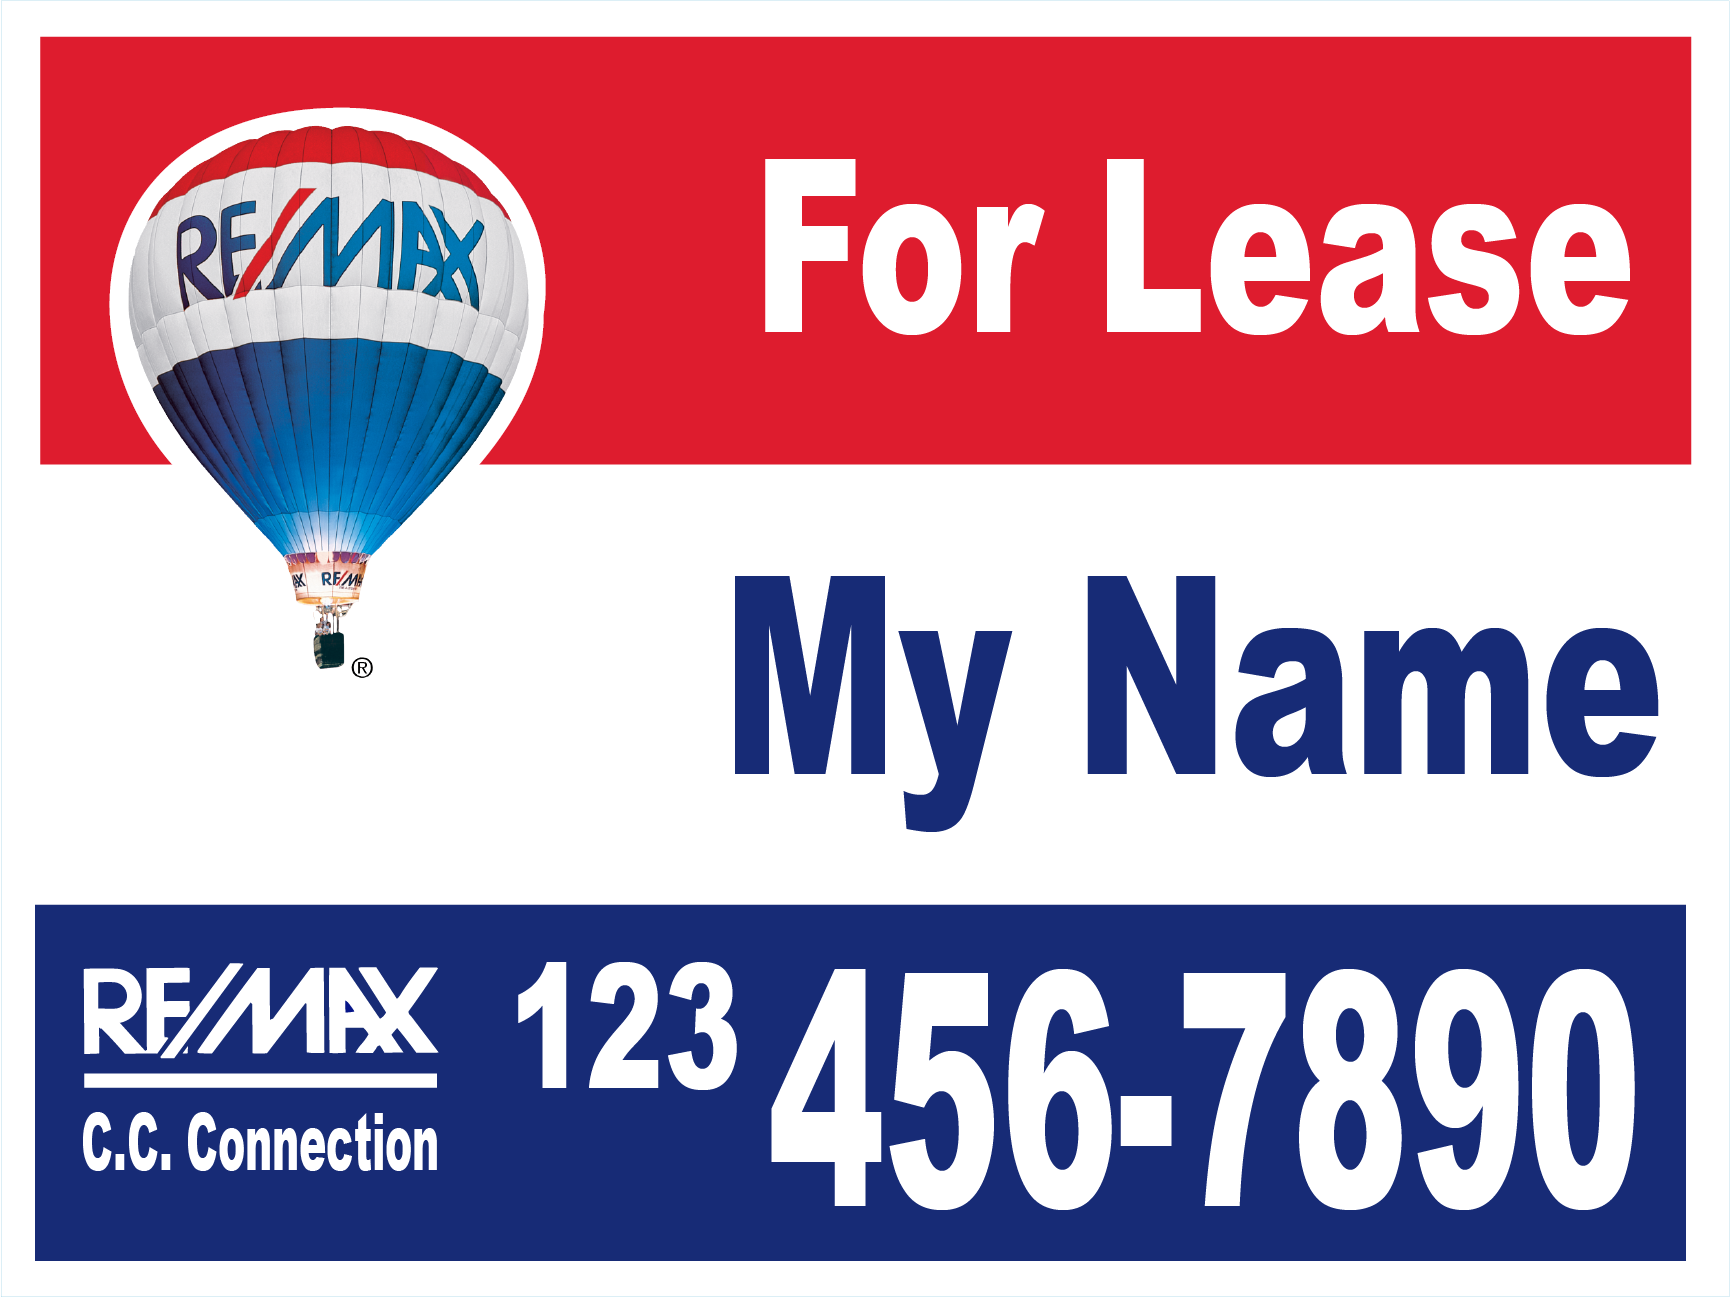 18 x 24 Yard Sign For Lease CATALOG